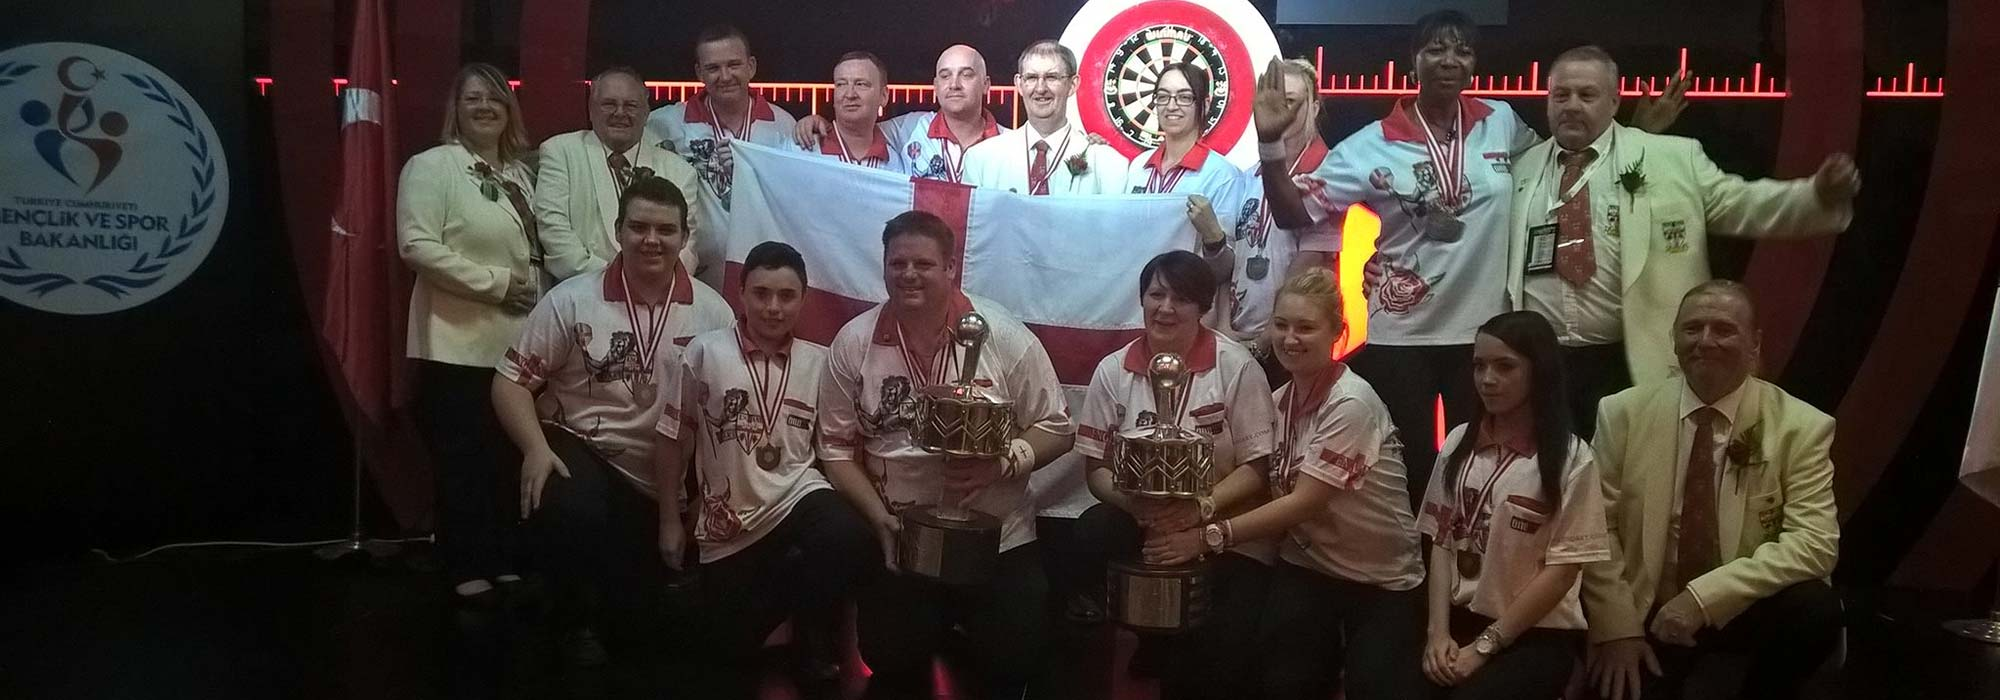 WDF World Cup 2015 Winners England - Banner